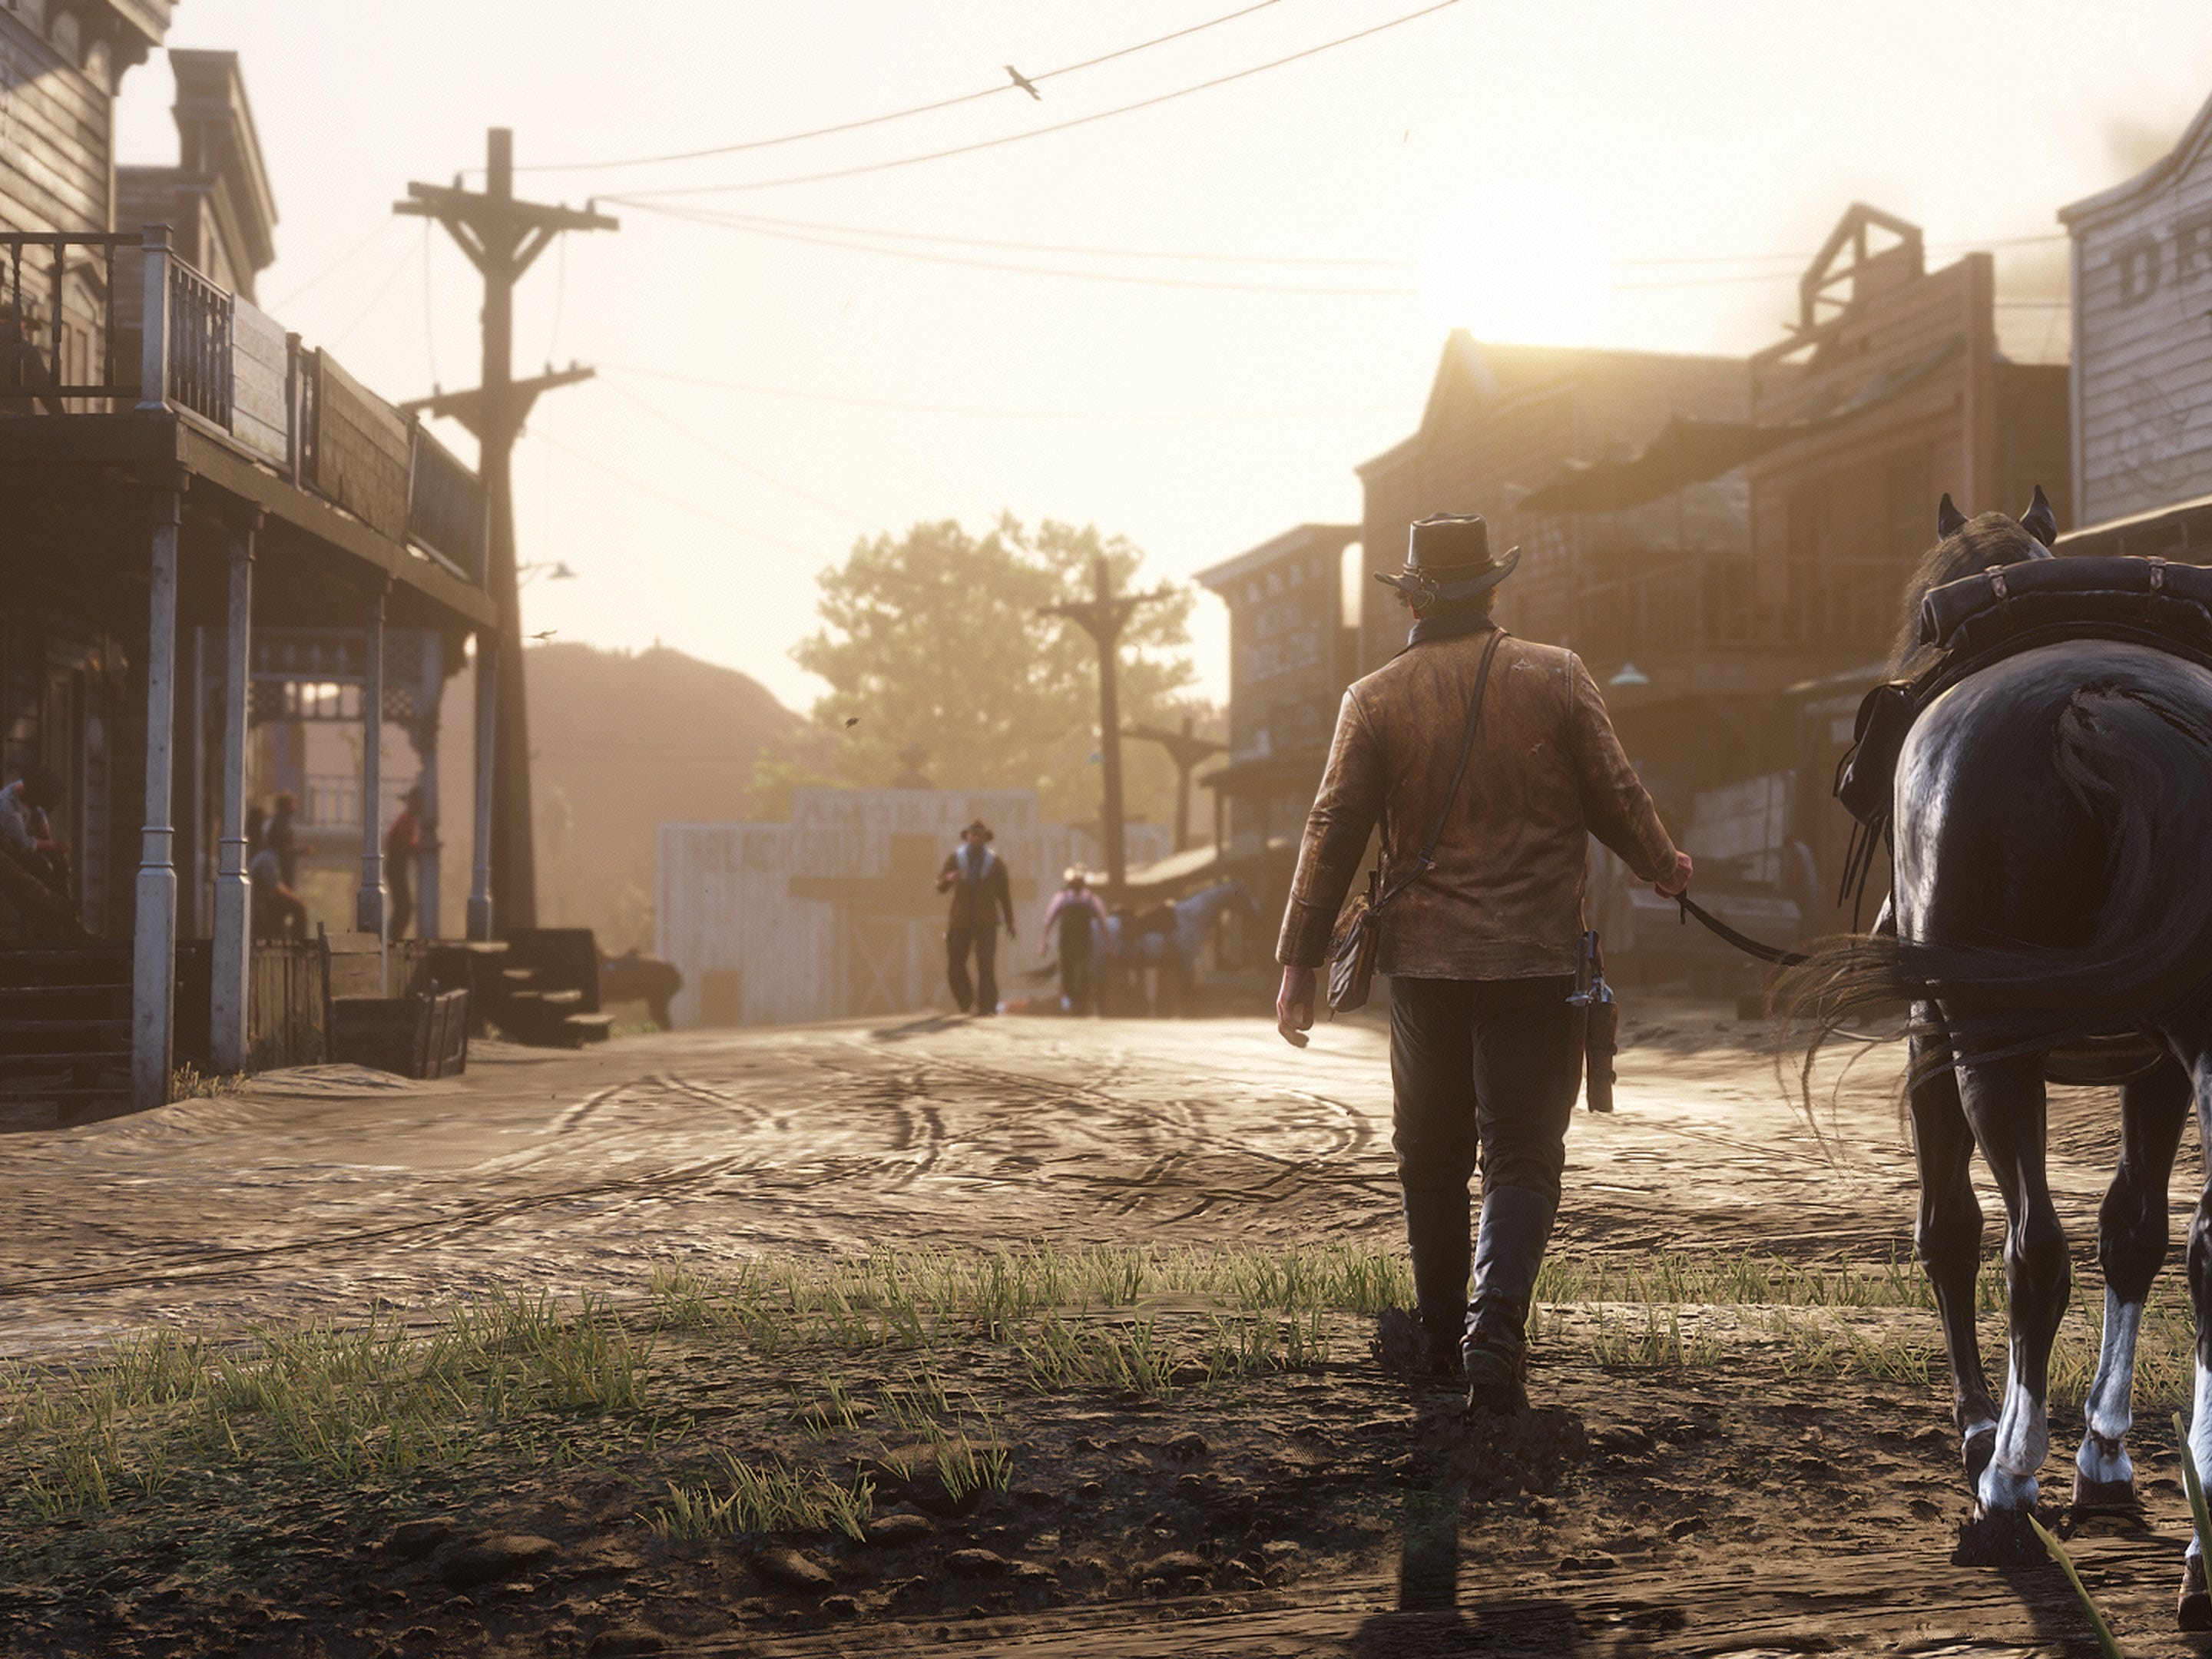 Visit burgeoning turn-of-the-century towns as you explore 'Red Dead Redemption 2.' While there, you can buy supplies, upgrade your weapons, play poker and frequent the saloon.